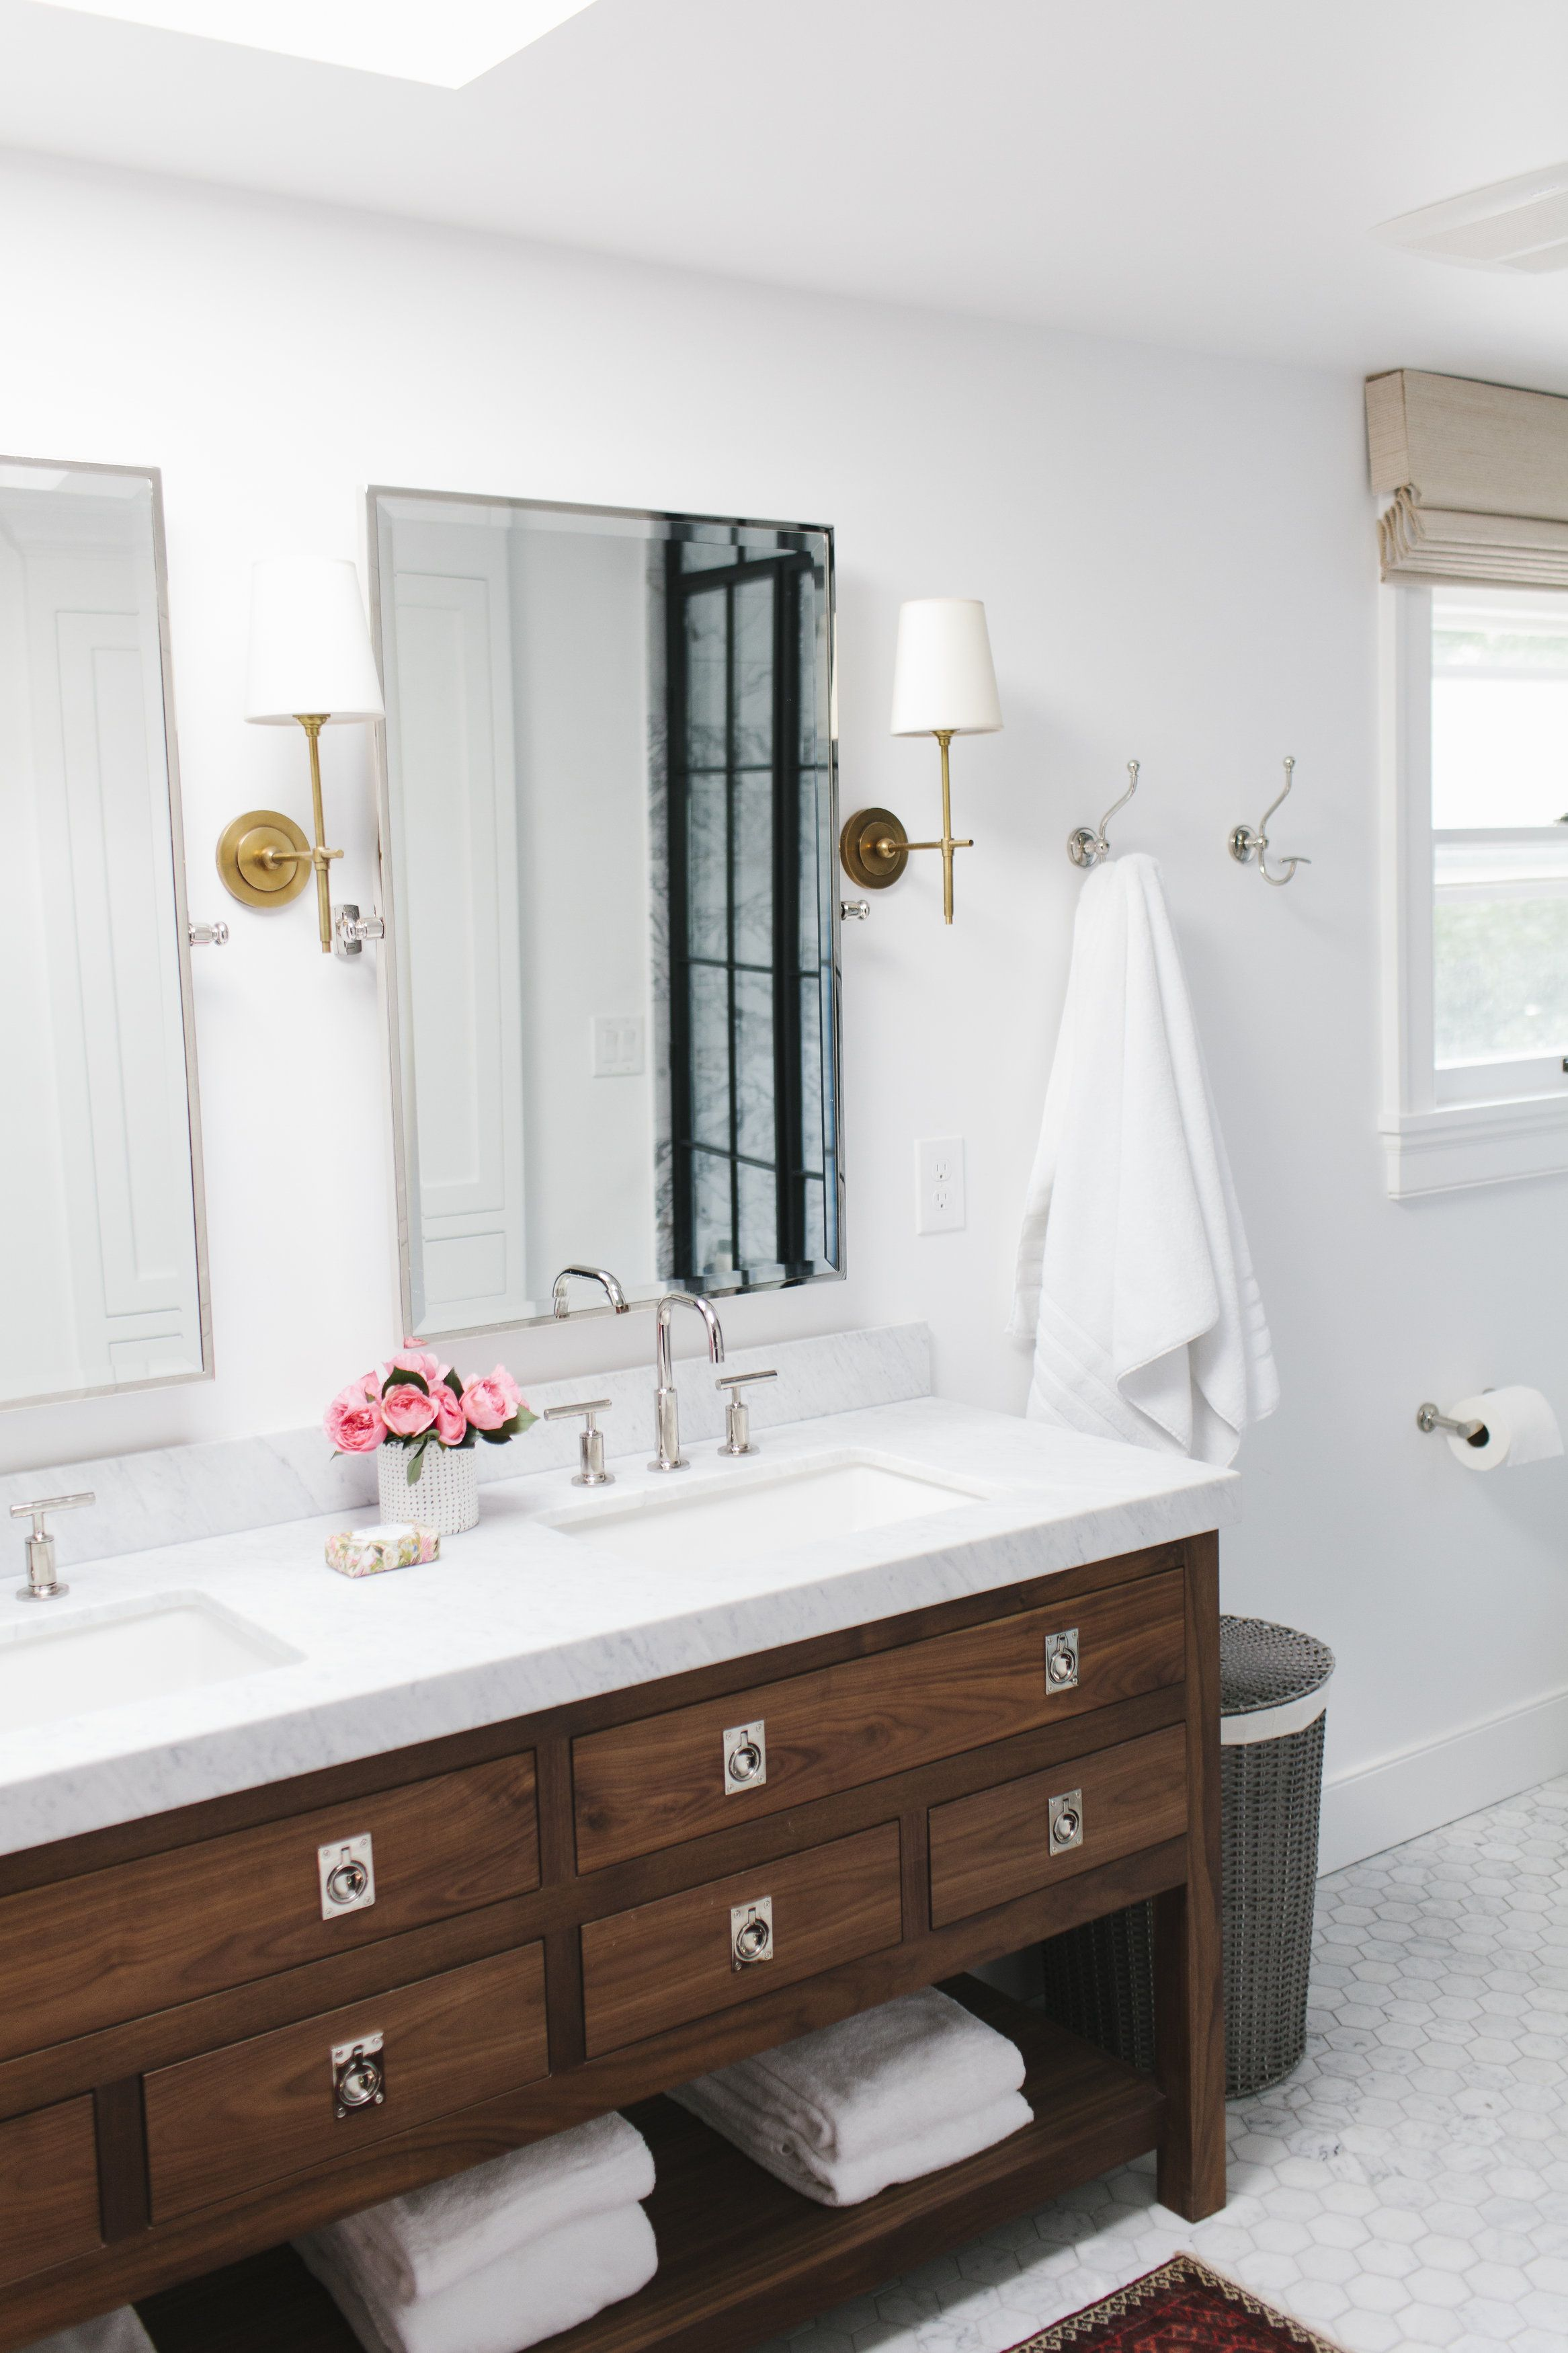 Lynwood remodel master bedroom and bath studio mcgee marbles and vanities Master bedroom with bathroom vanity